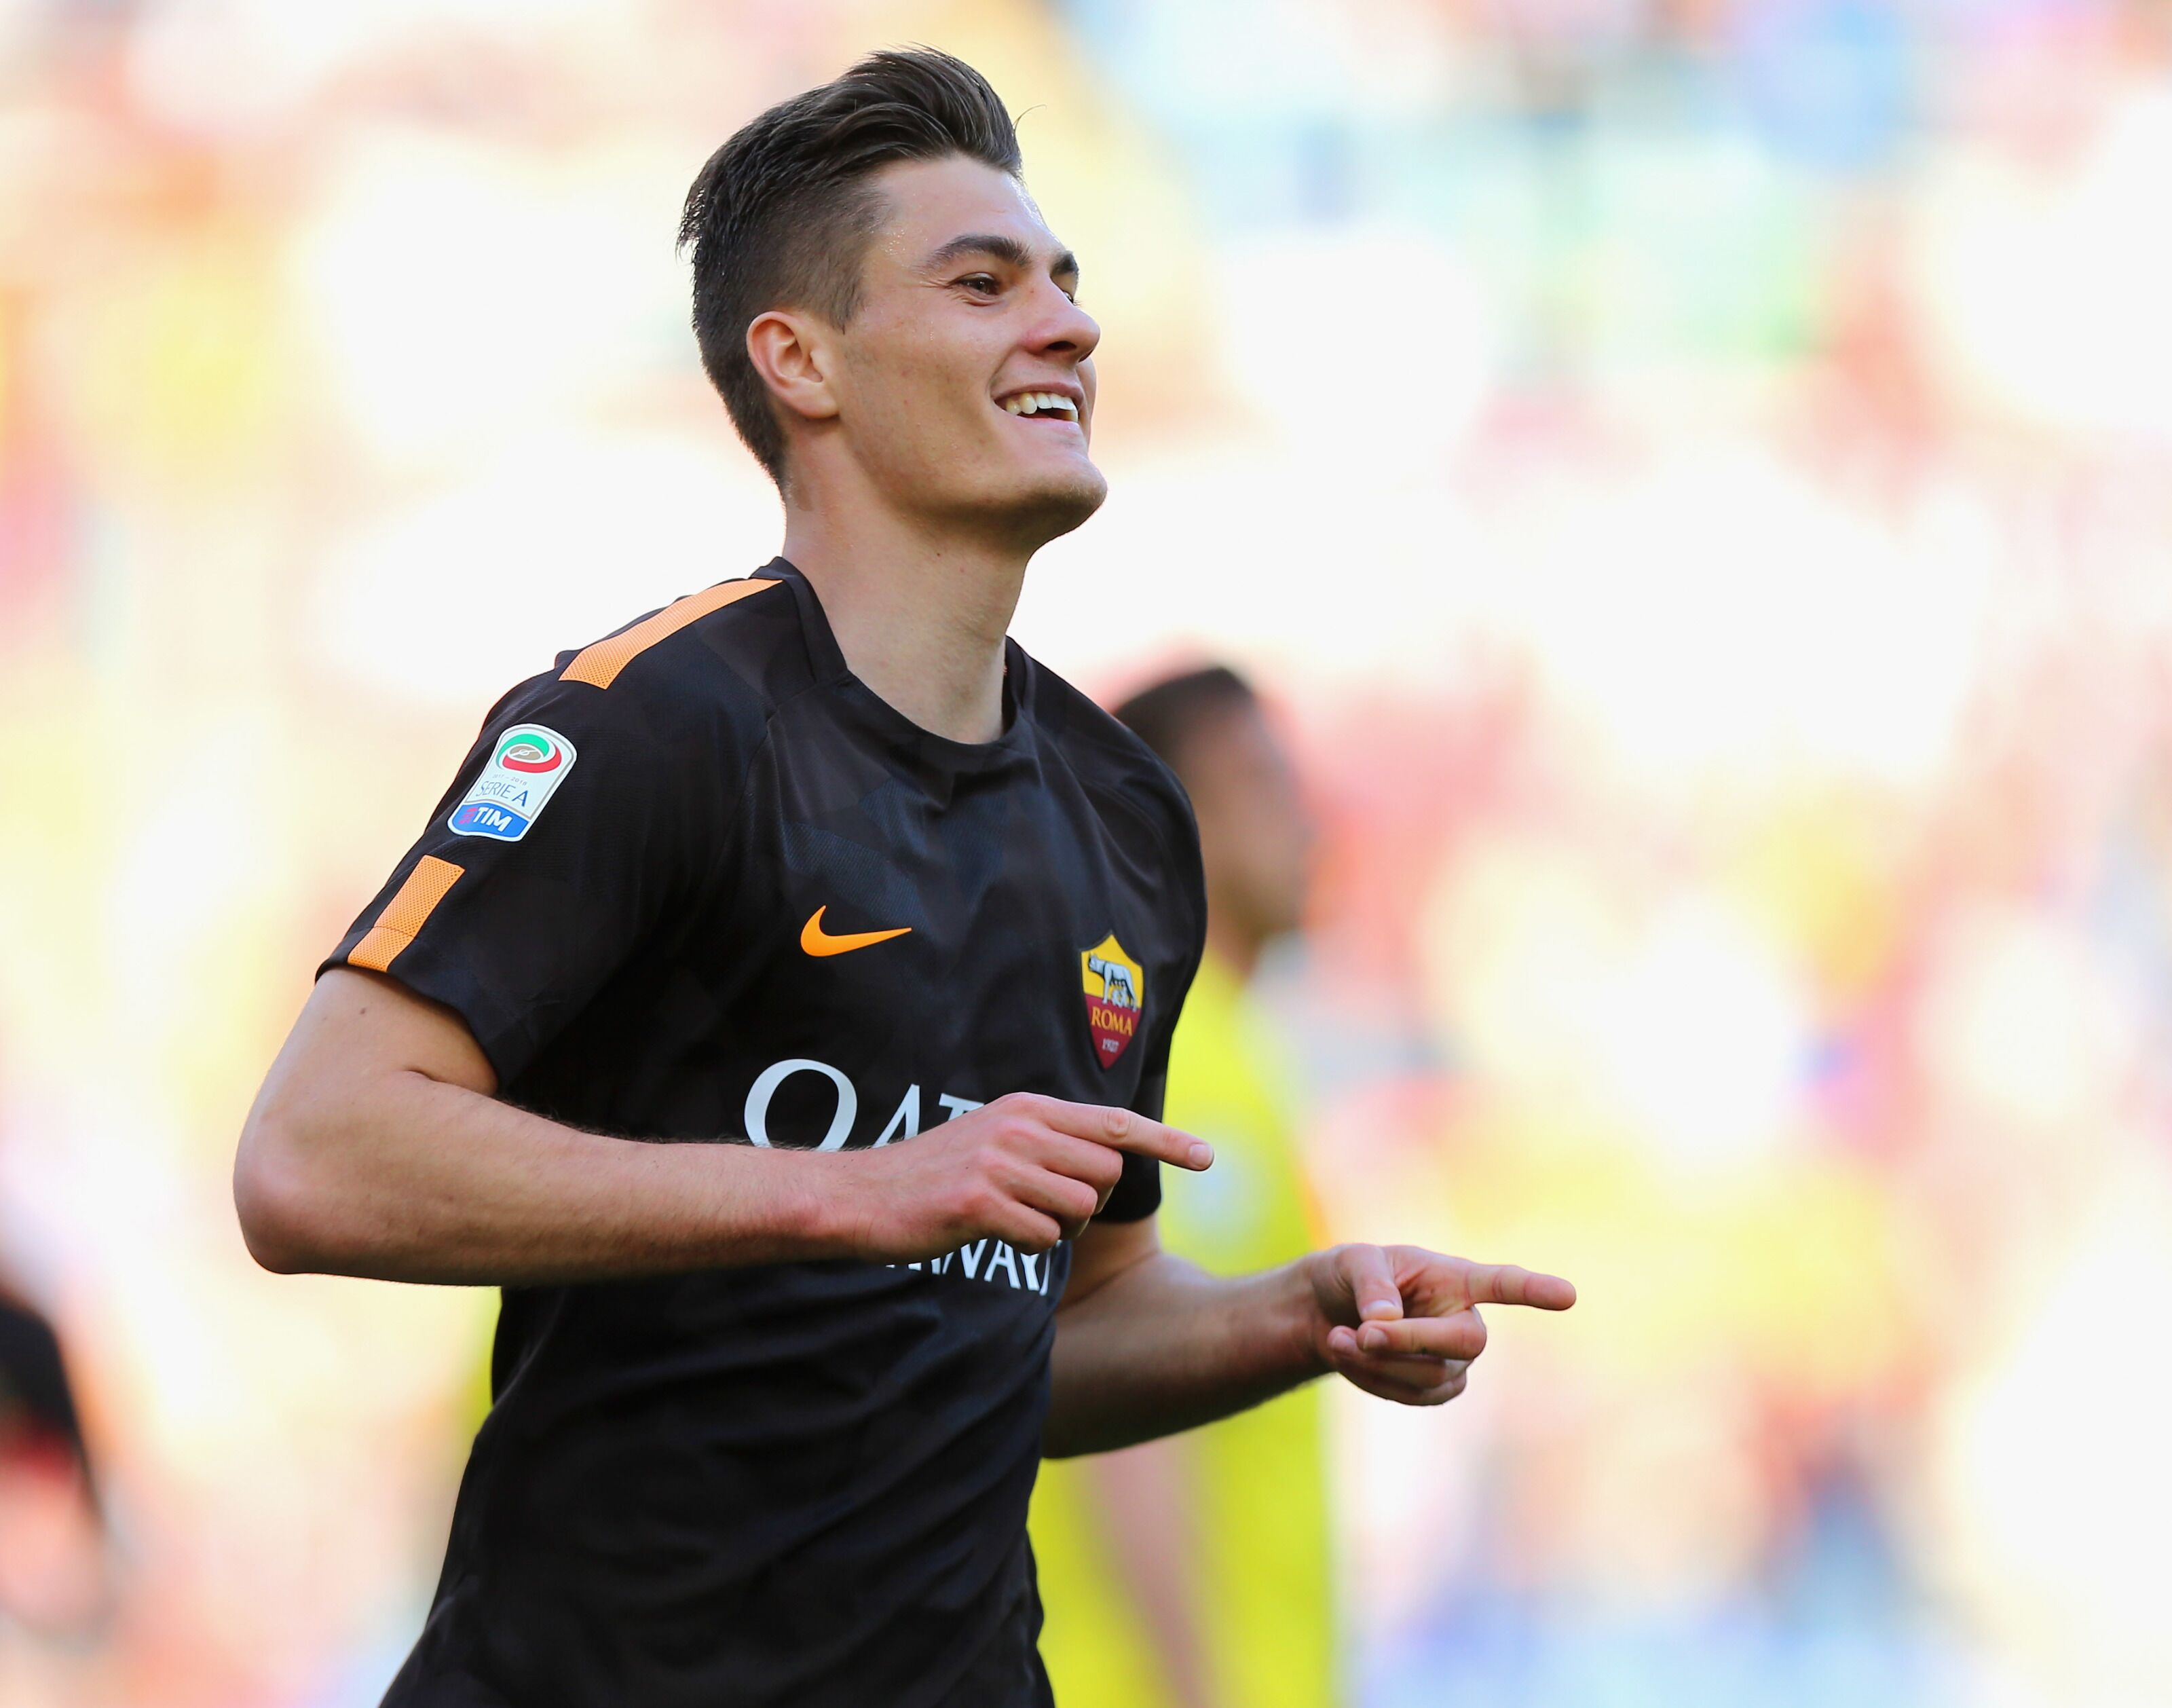 Arsenal: Patrick Schick just a confusing shot in the dark